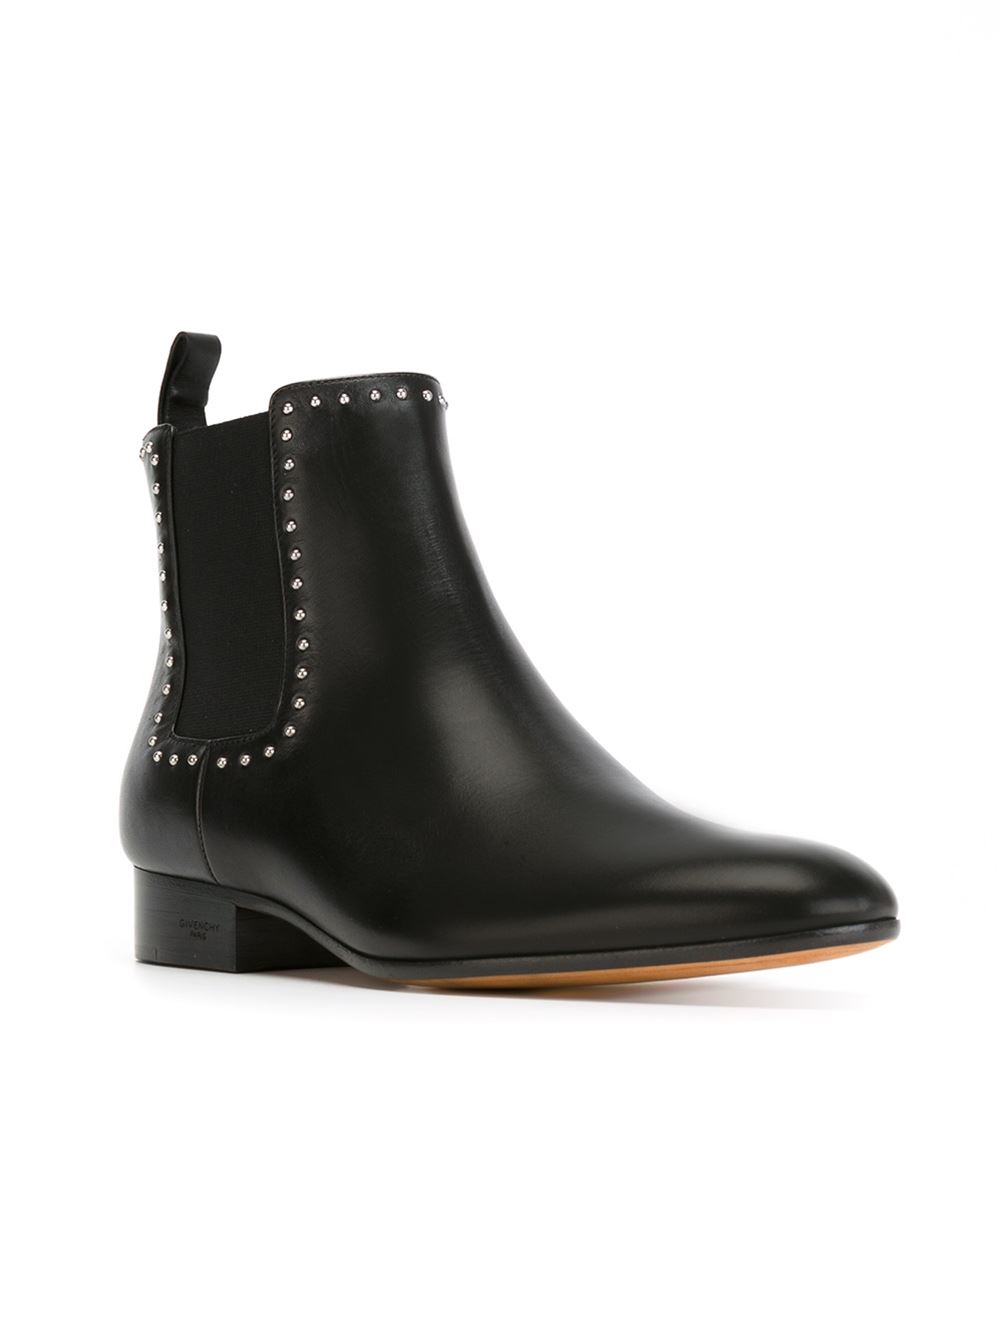 Givenchy Studded Chelsea Boots In Black Lyst